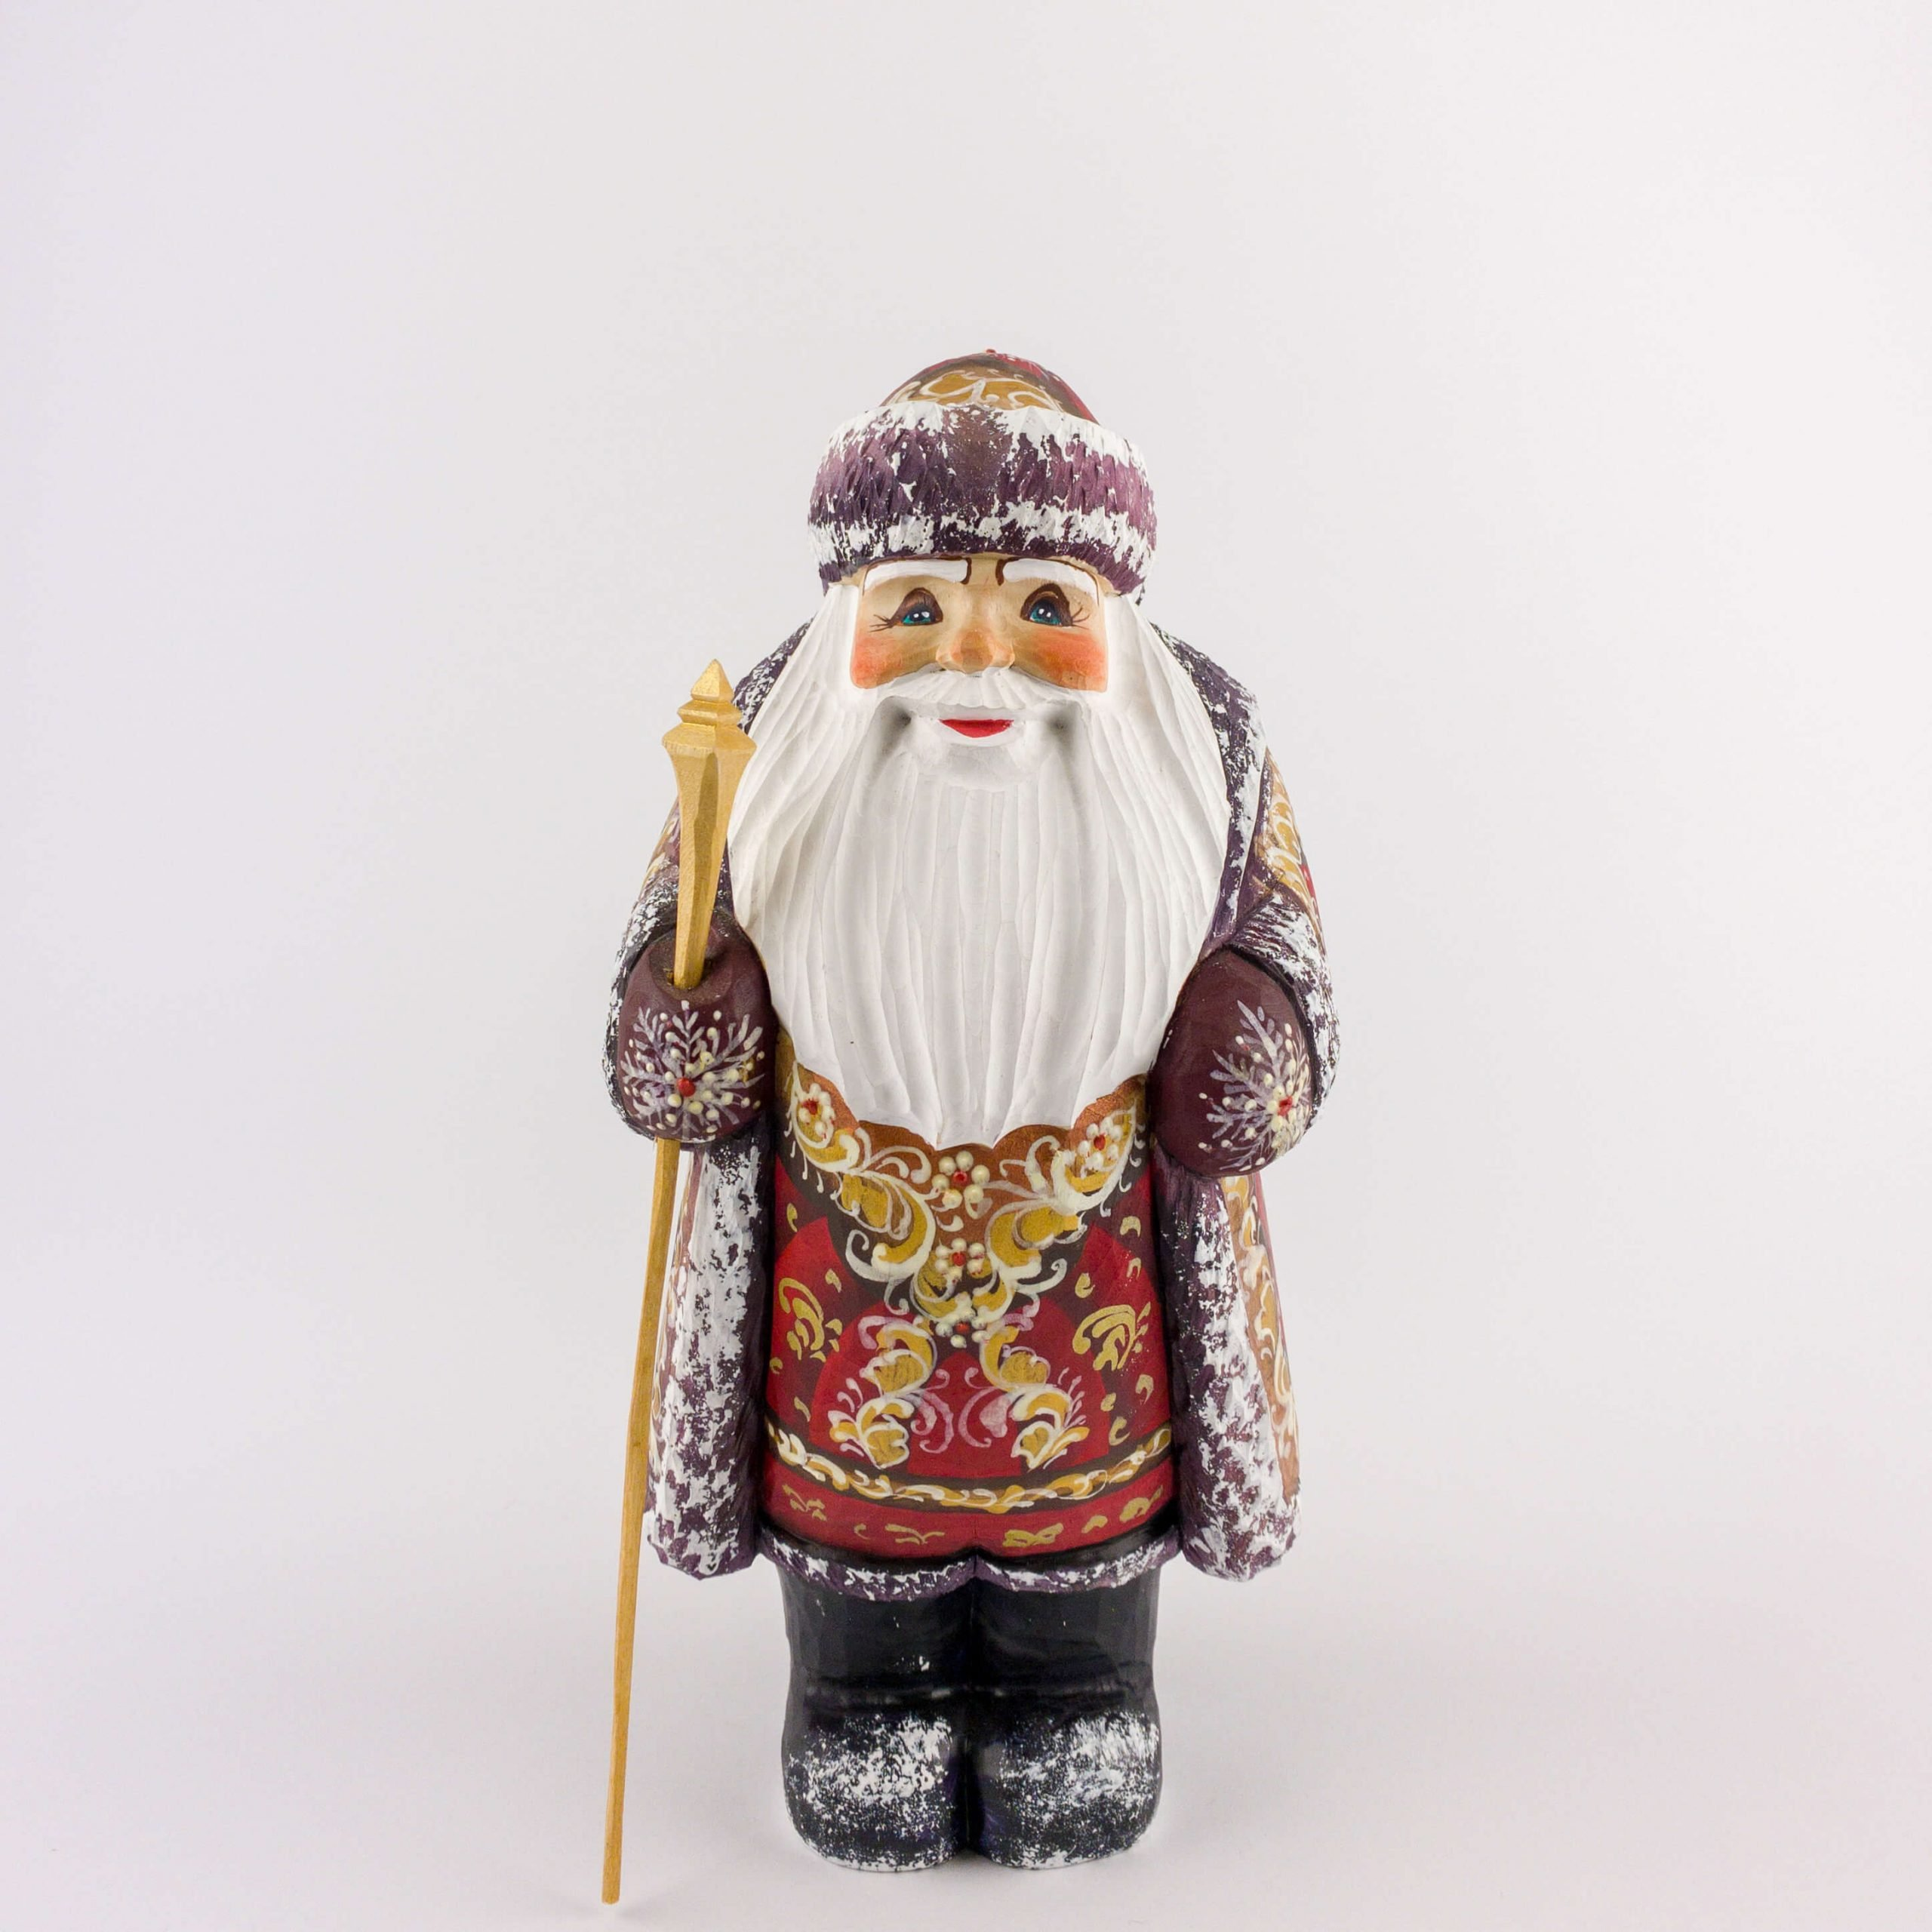 #MD0013 - Medium wooden Santa figure